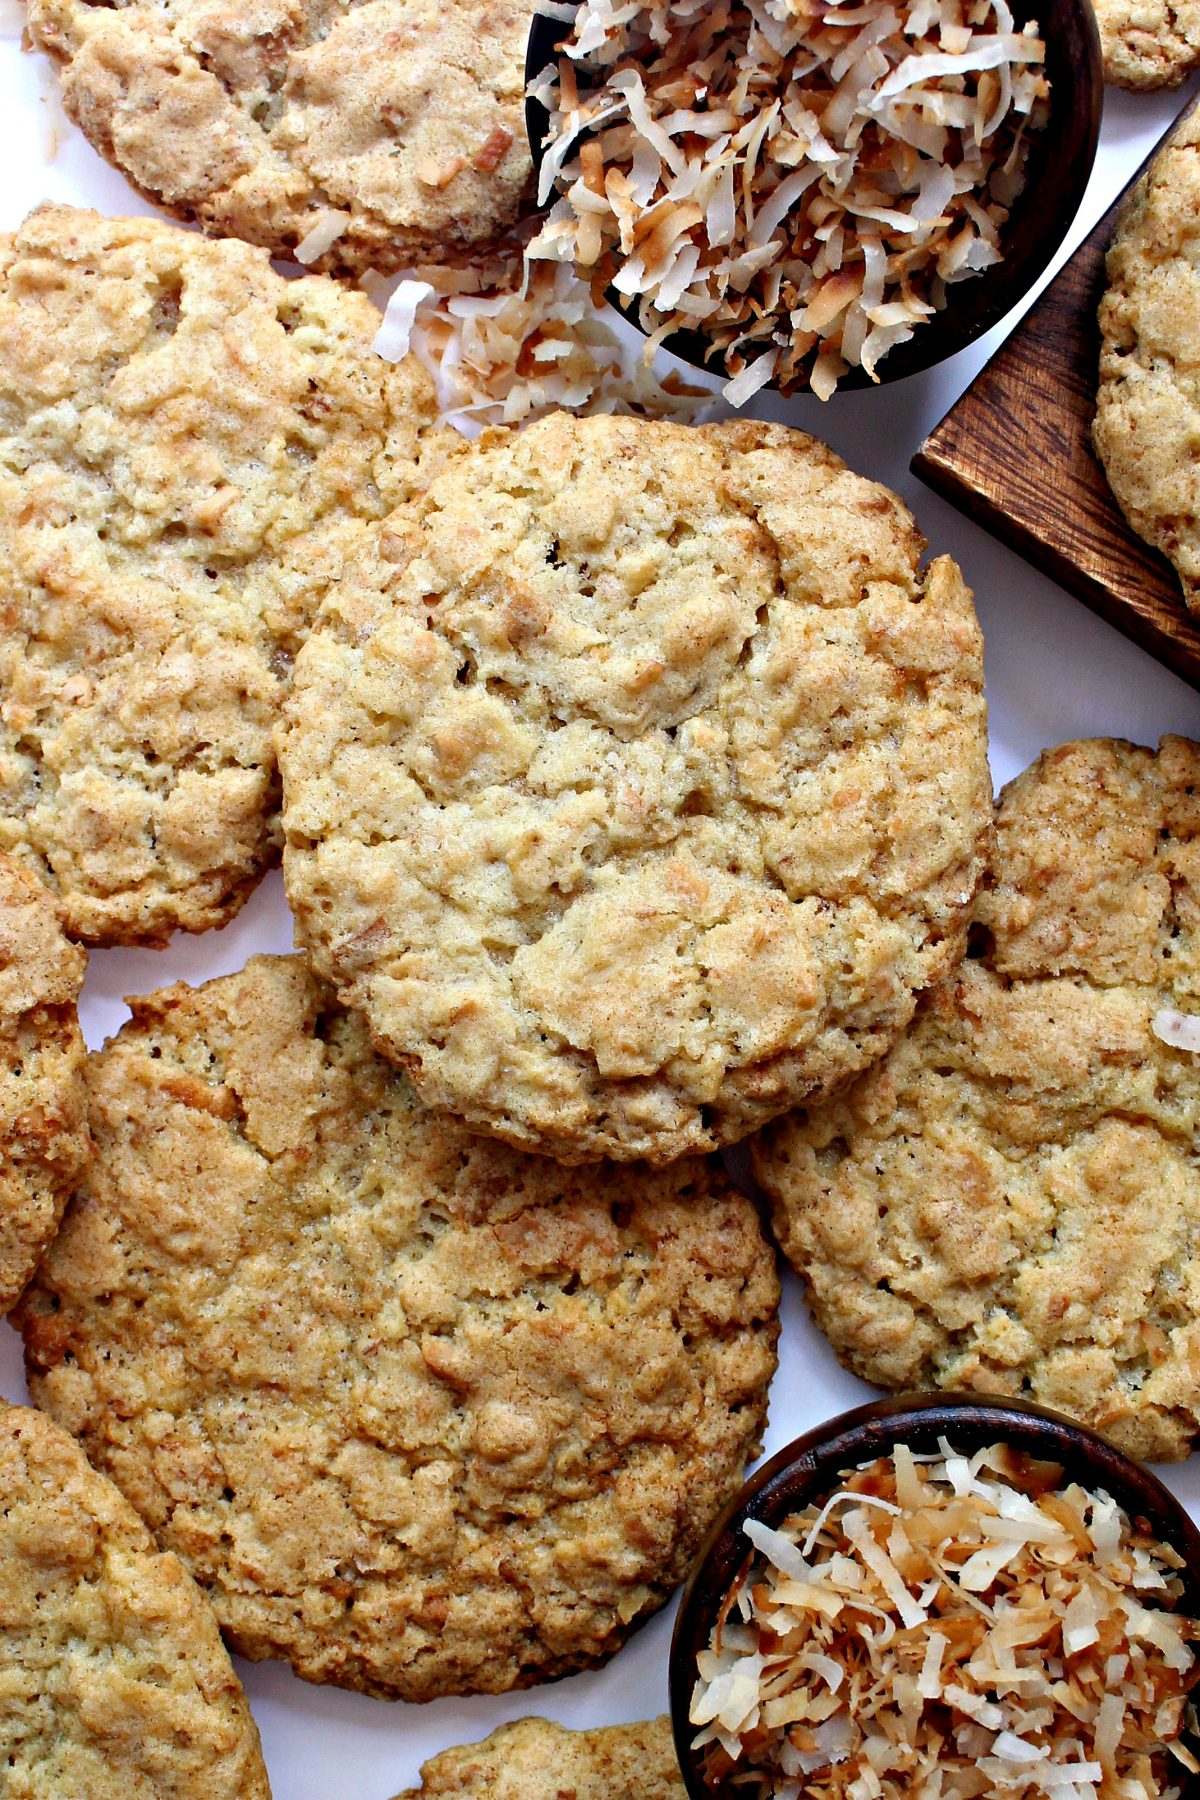 Roasted Coconut Crunch Cookies, thin with a crackled tops, with bowls of toasted coconut.